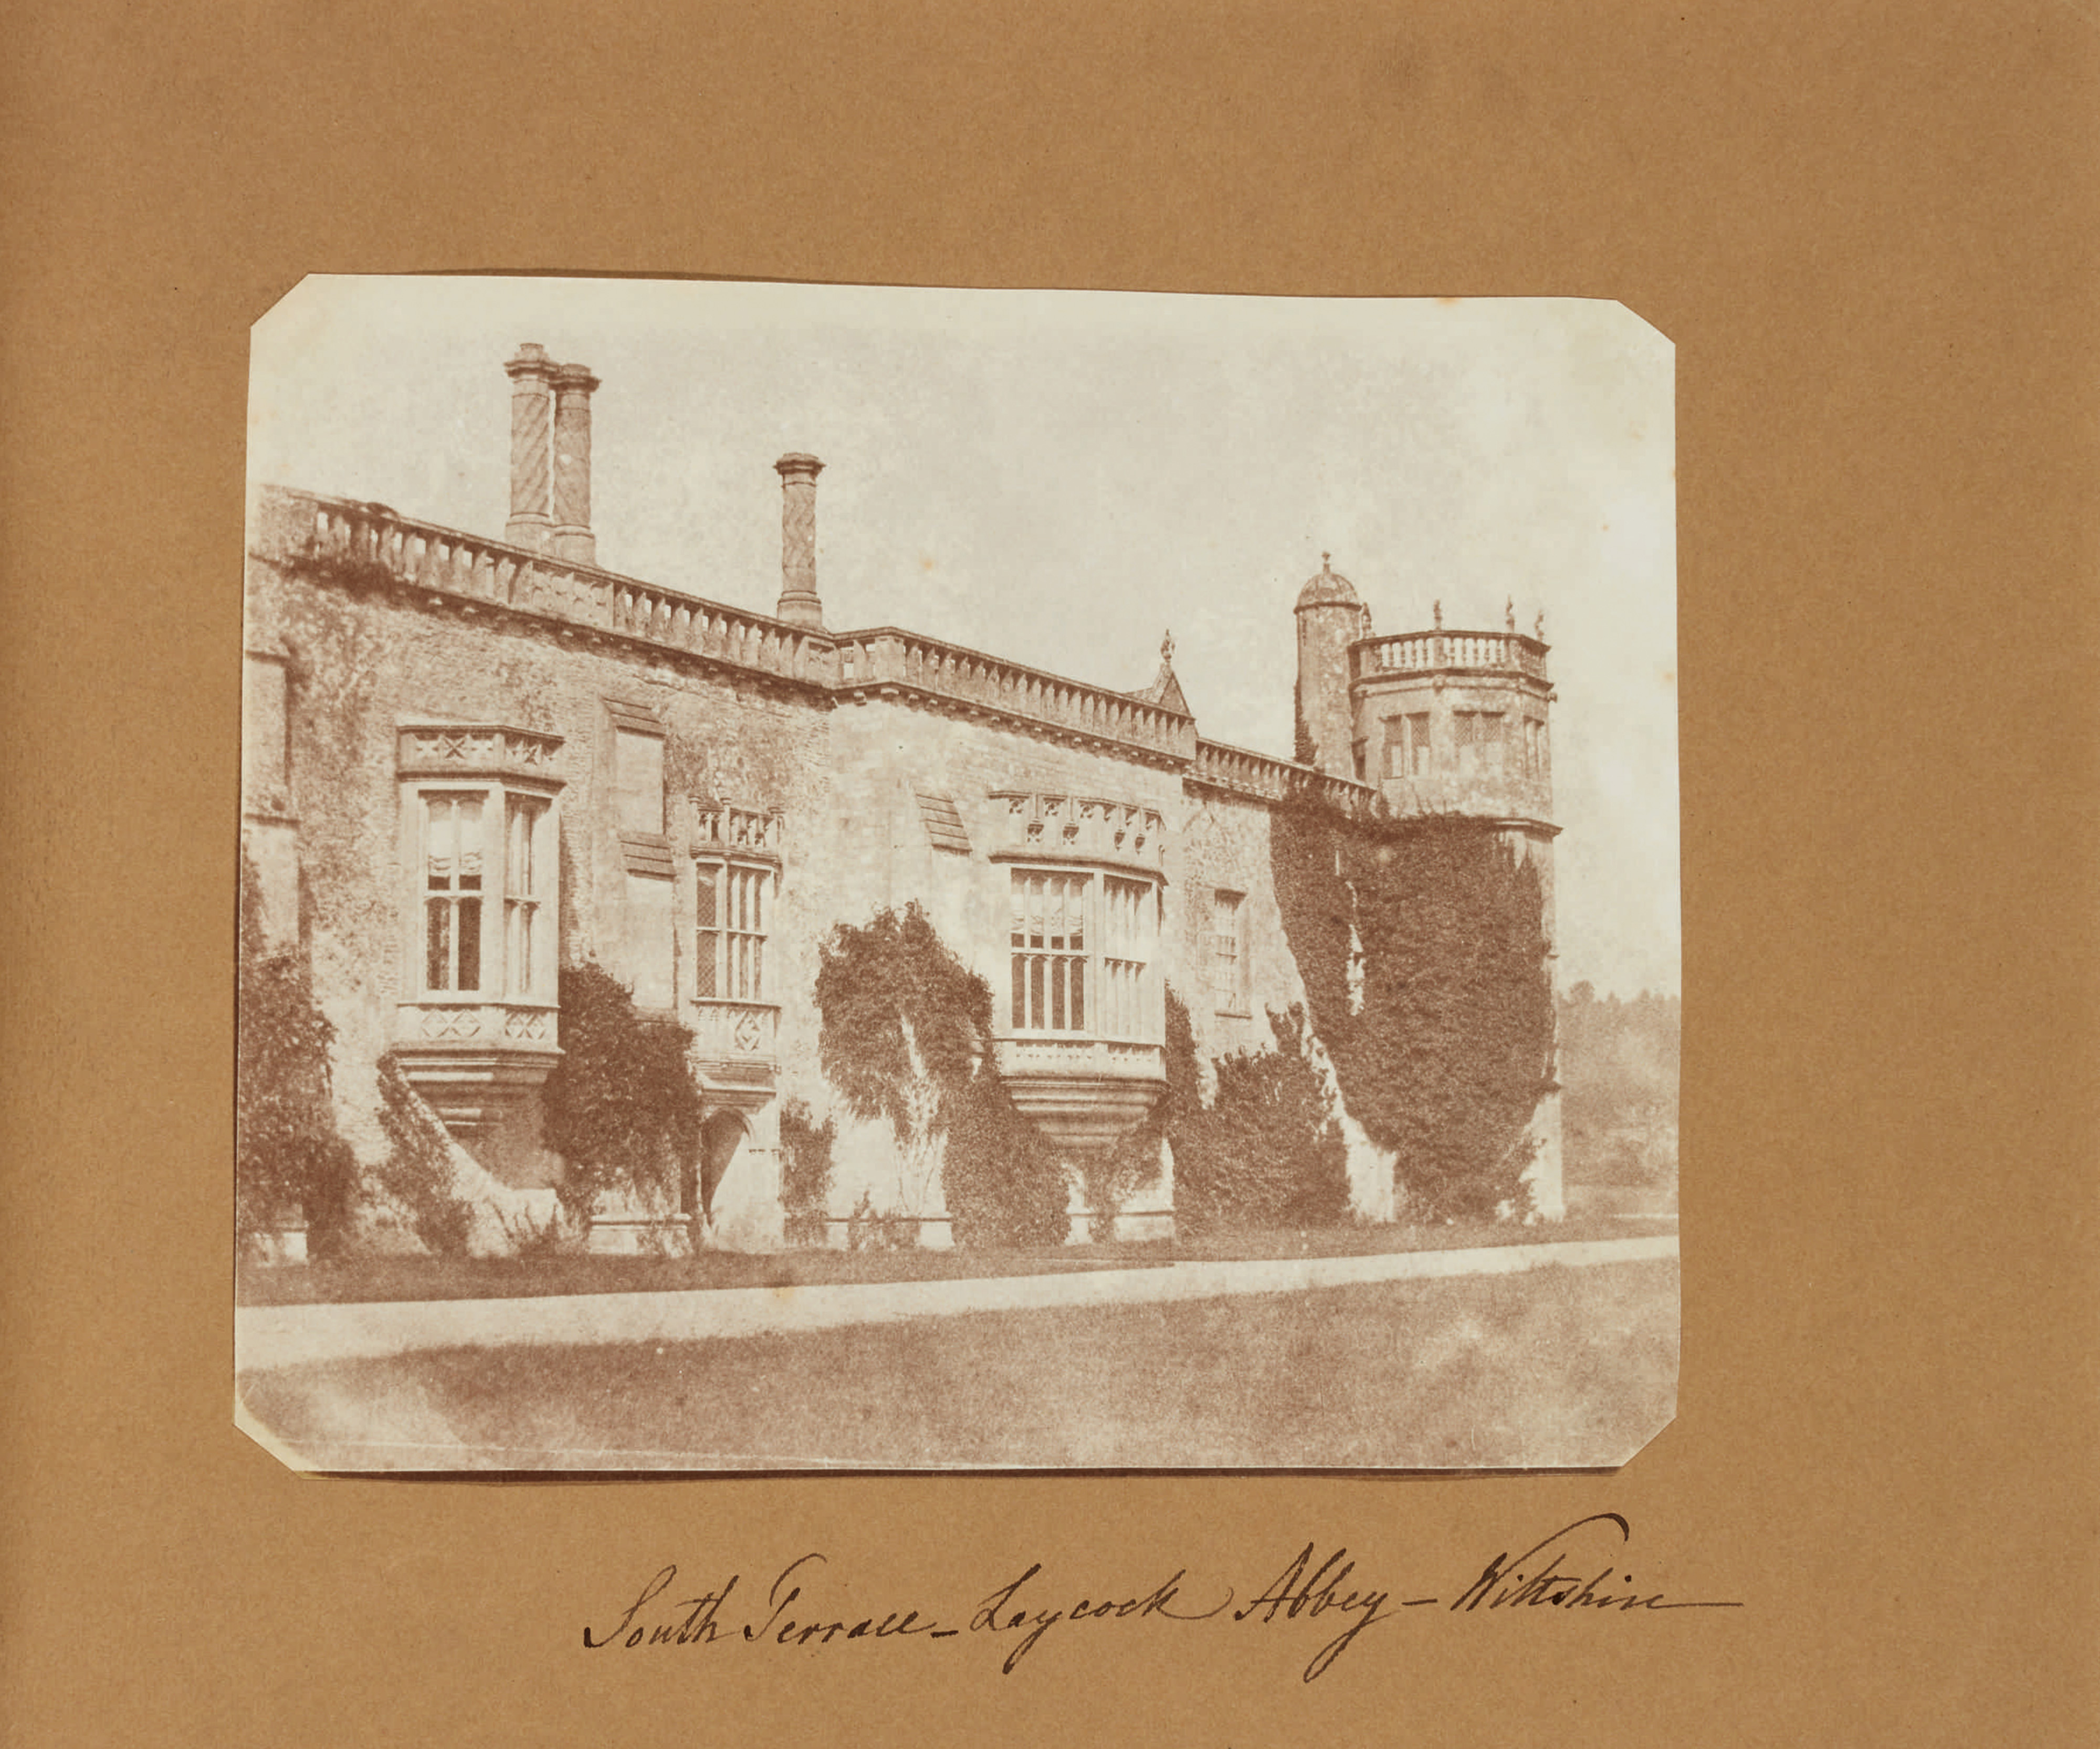 Fotó: William Henry Fox Talbot:<br />South Terrace, Lacock Abbey, Wiltshire<br />William Henry Fox Talbot Archive<br />Courtesy of Sotheby's